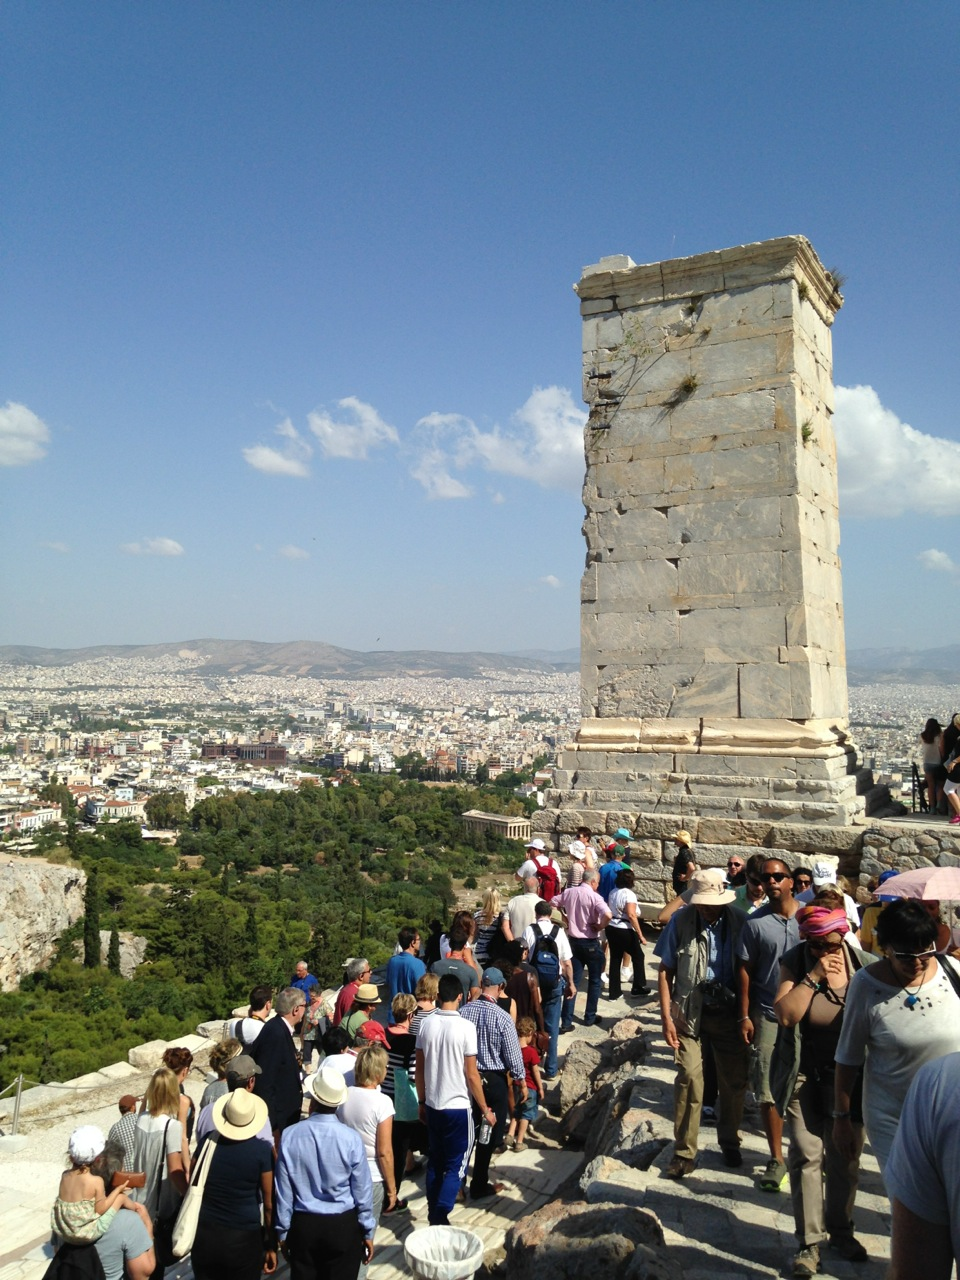 Markus Agrippa monument at the Acropolis in Athens, Greece.